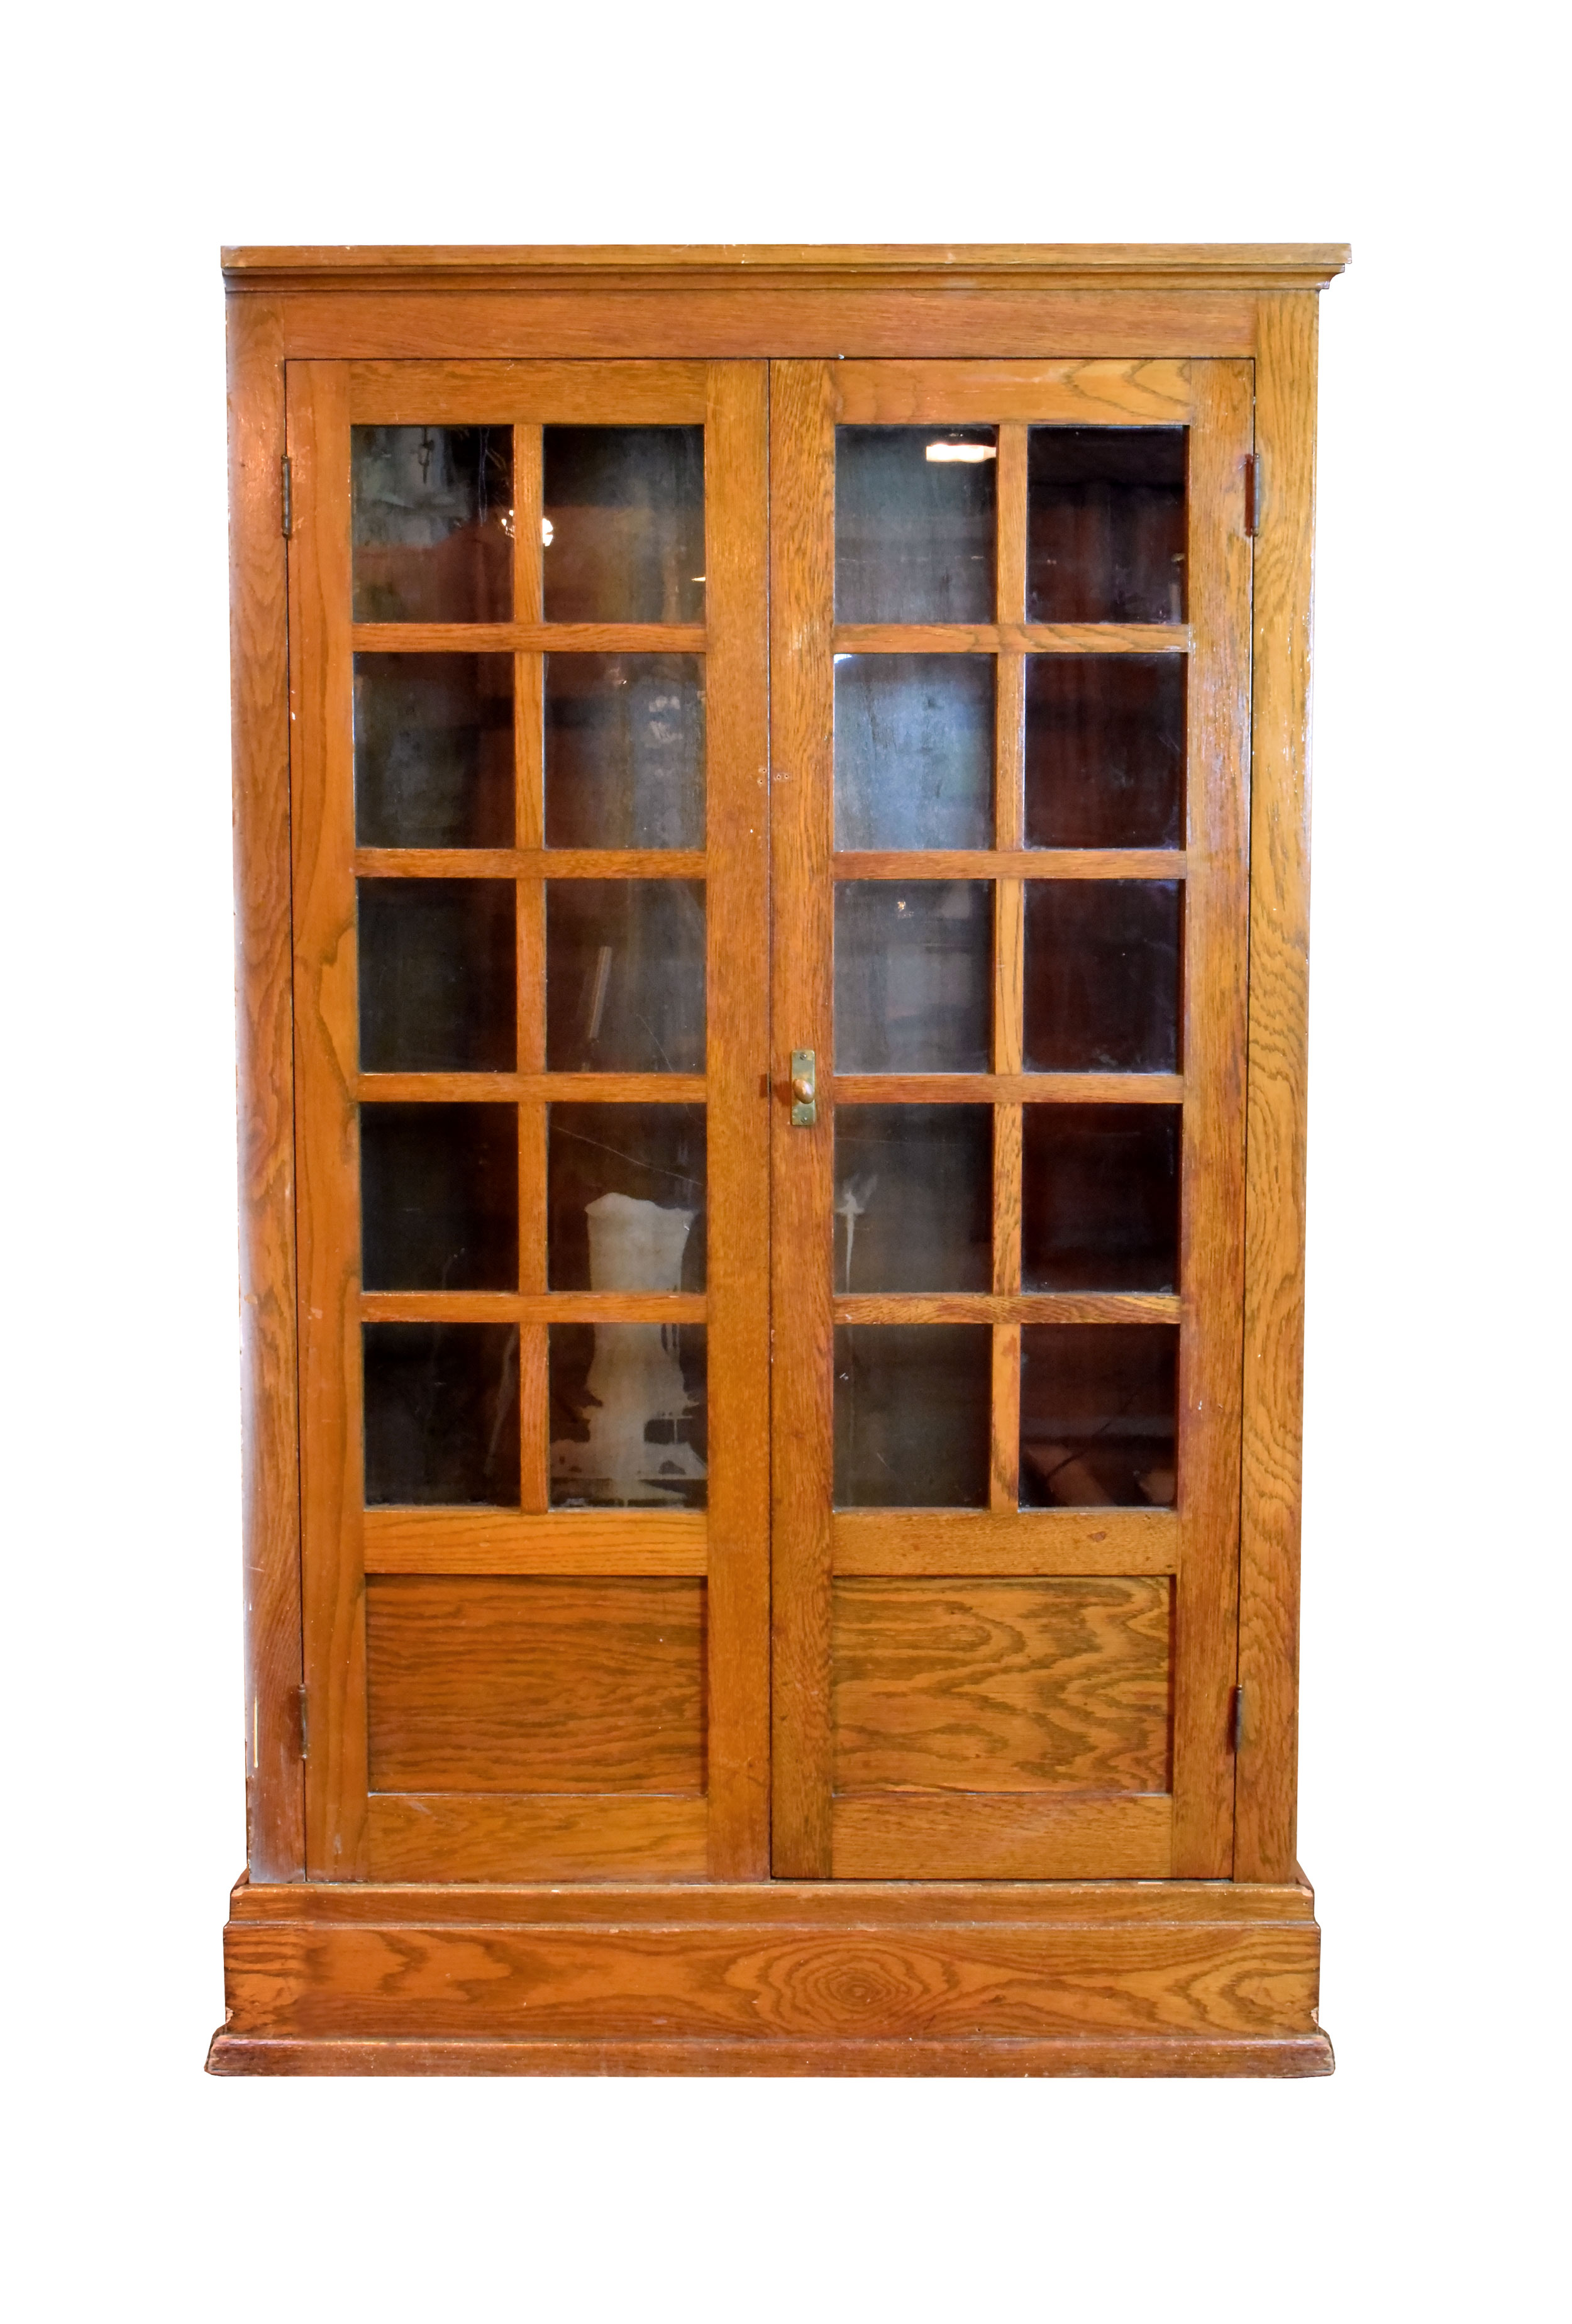 arts & crafts built-in schoolhouse cabinet